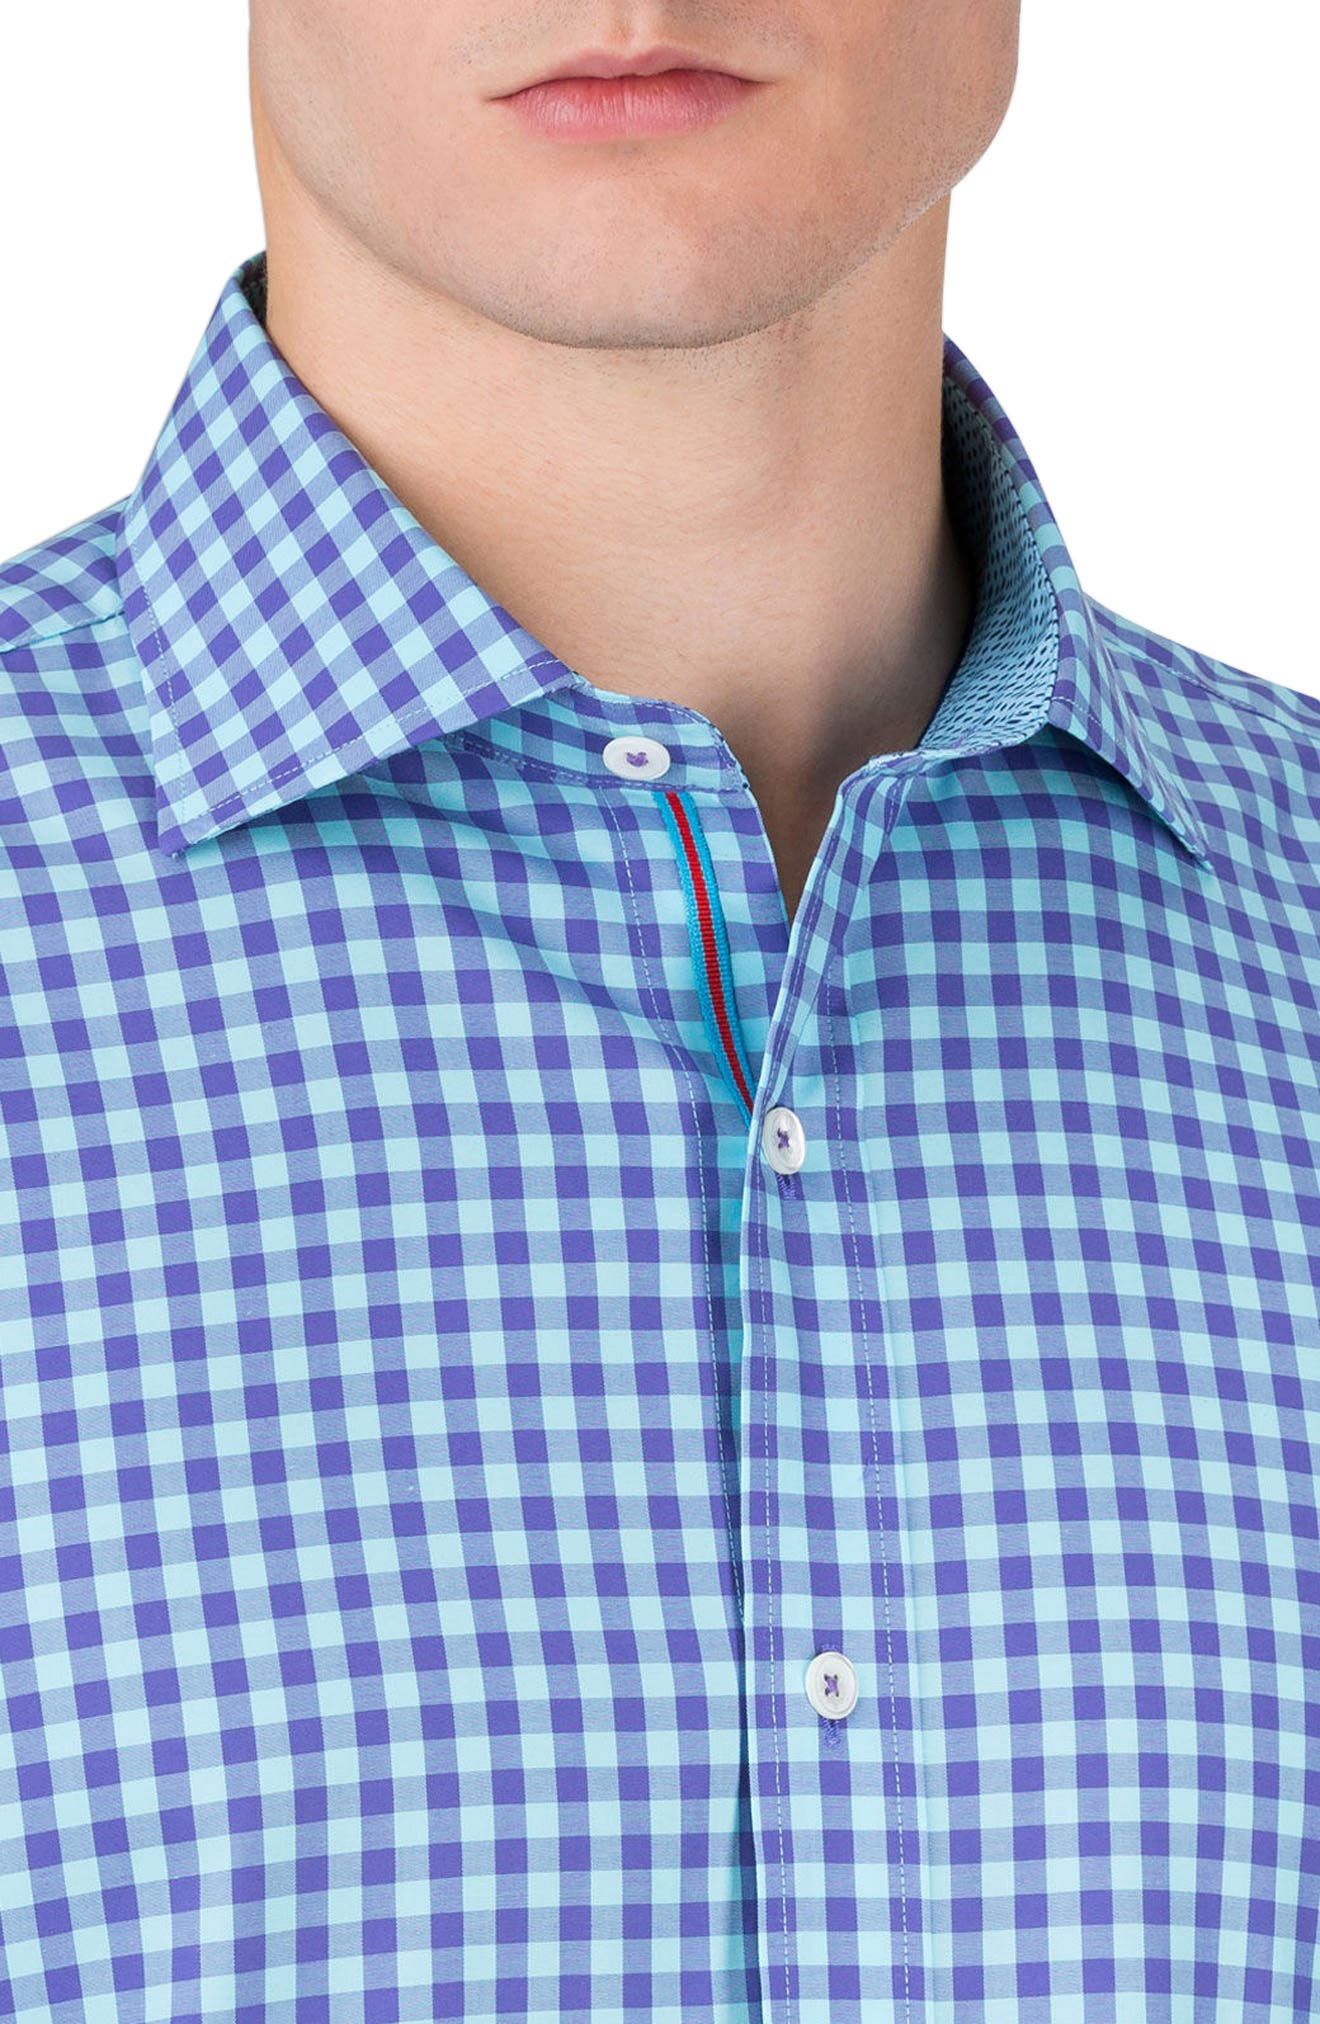 Classic Fit Gingham Sport Shirt,                             Alternate thumbnail 3, color,                             512